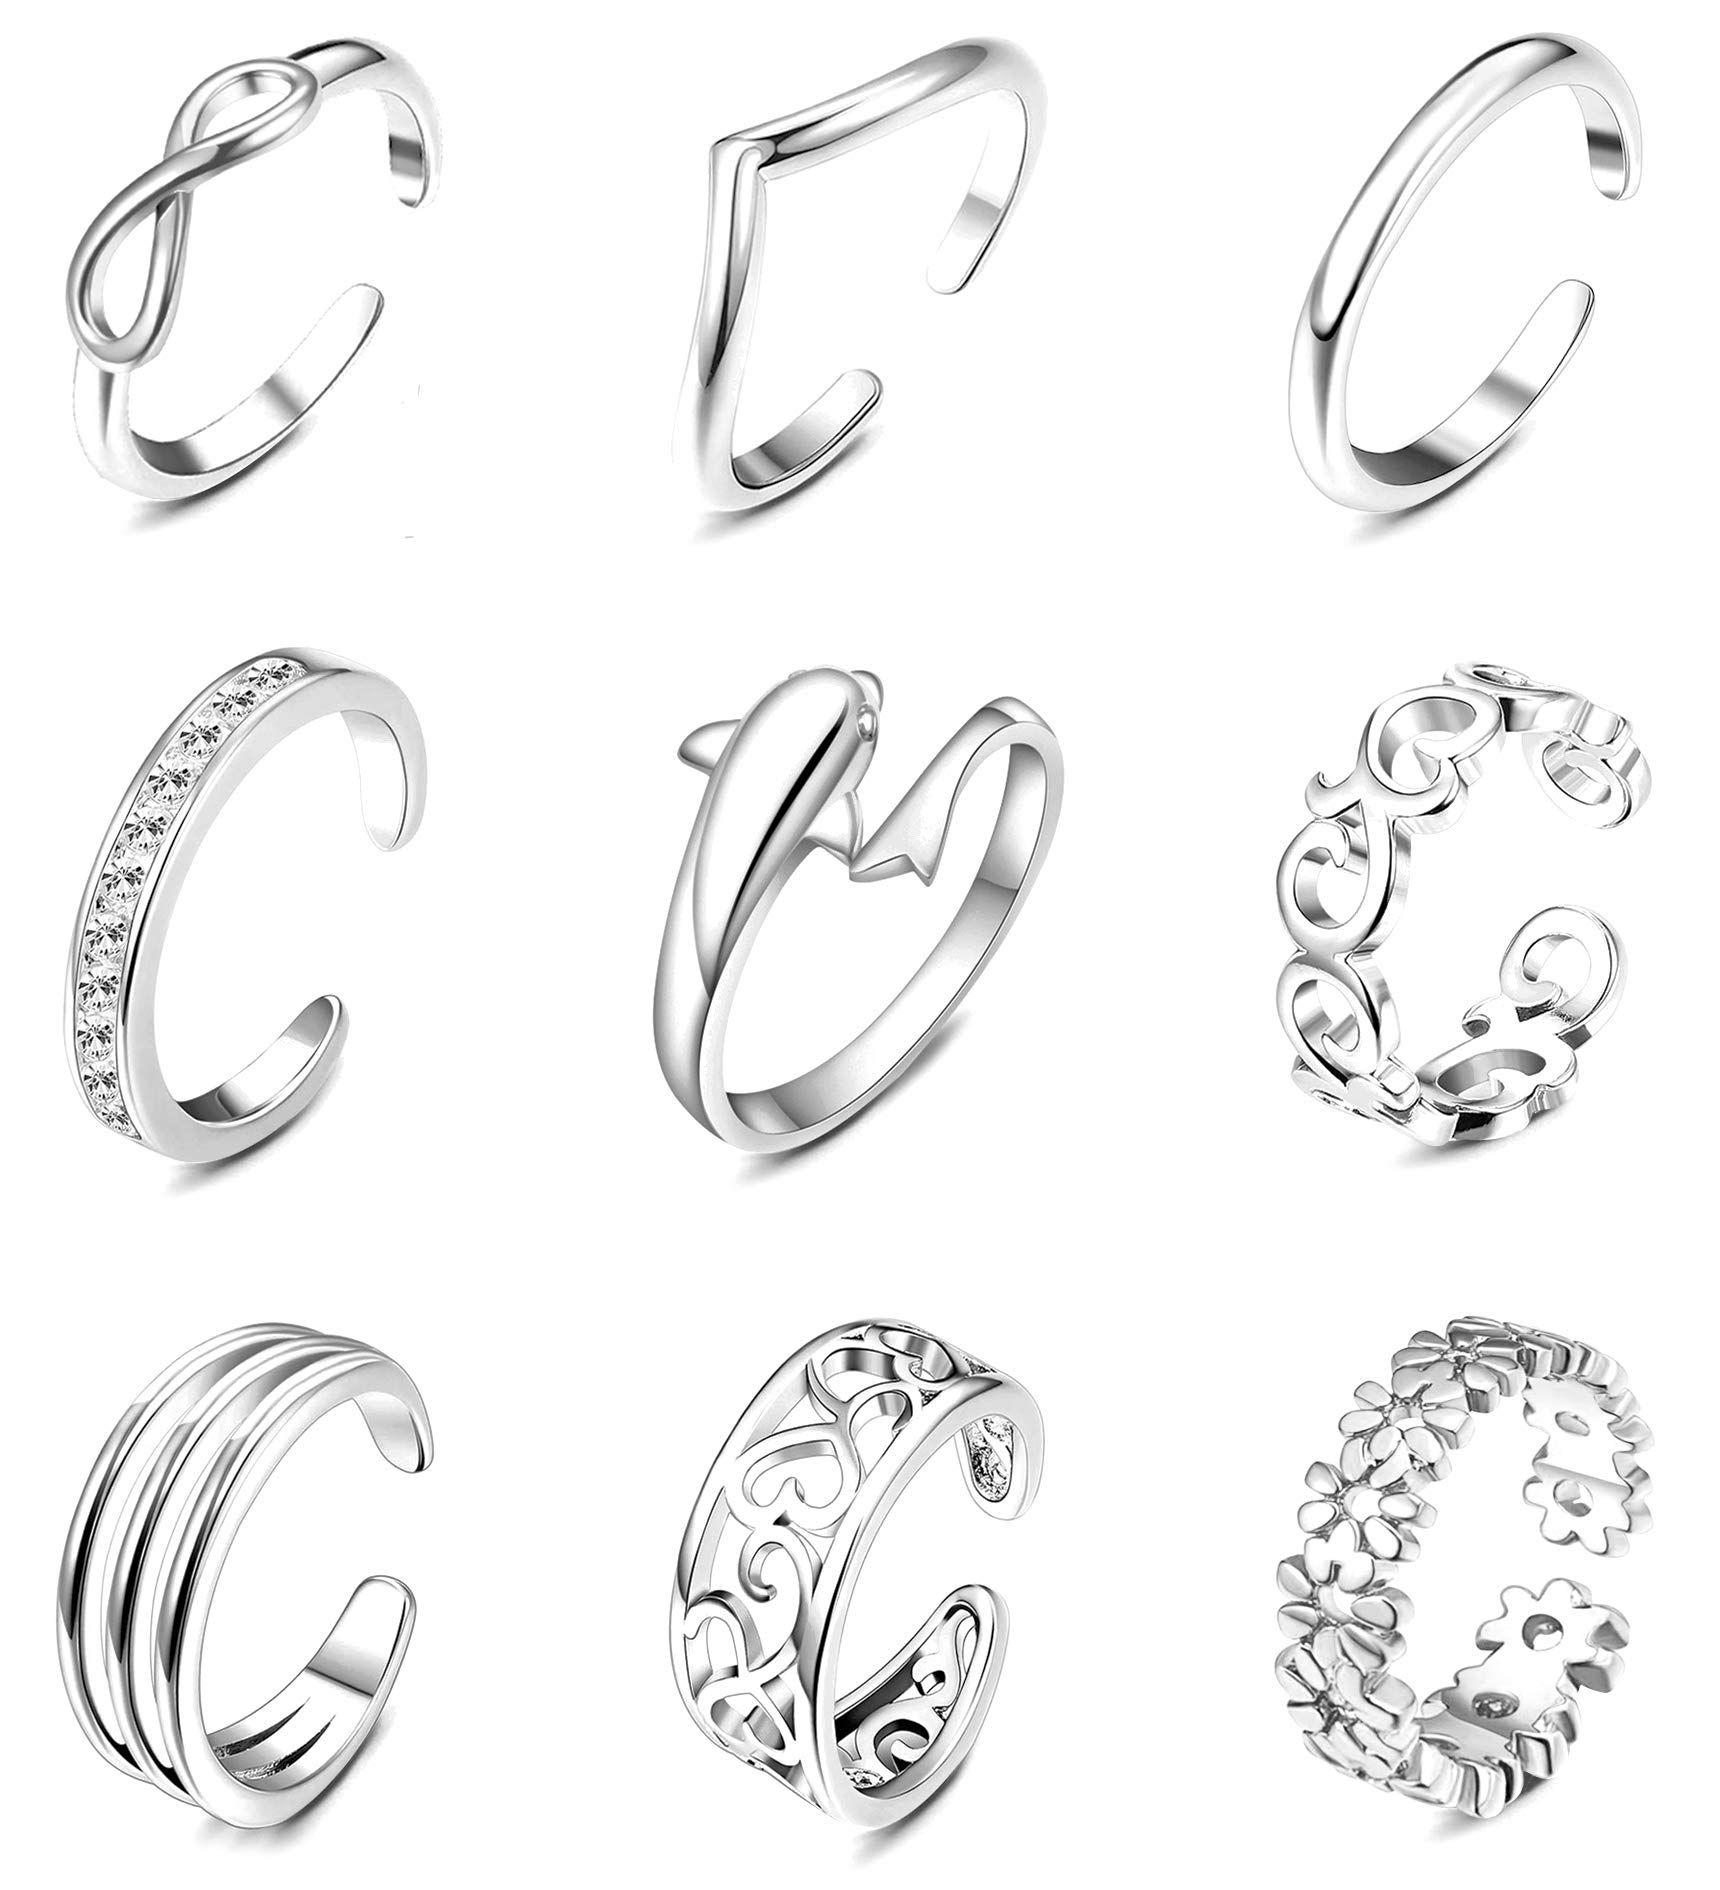 9PCS Adjustable Toe Ring for Women Girls Open Tail Ring Flower Knot Simple Toe Ring Gifts Jewelry Set